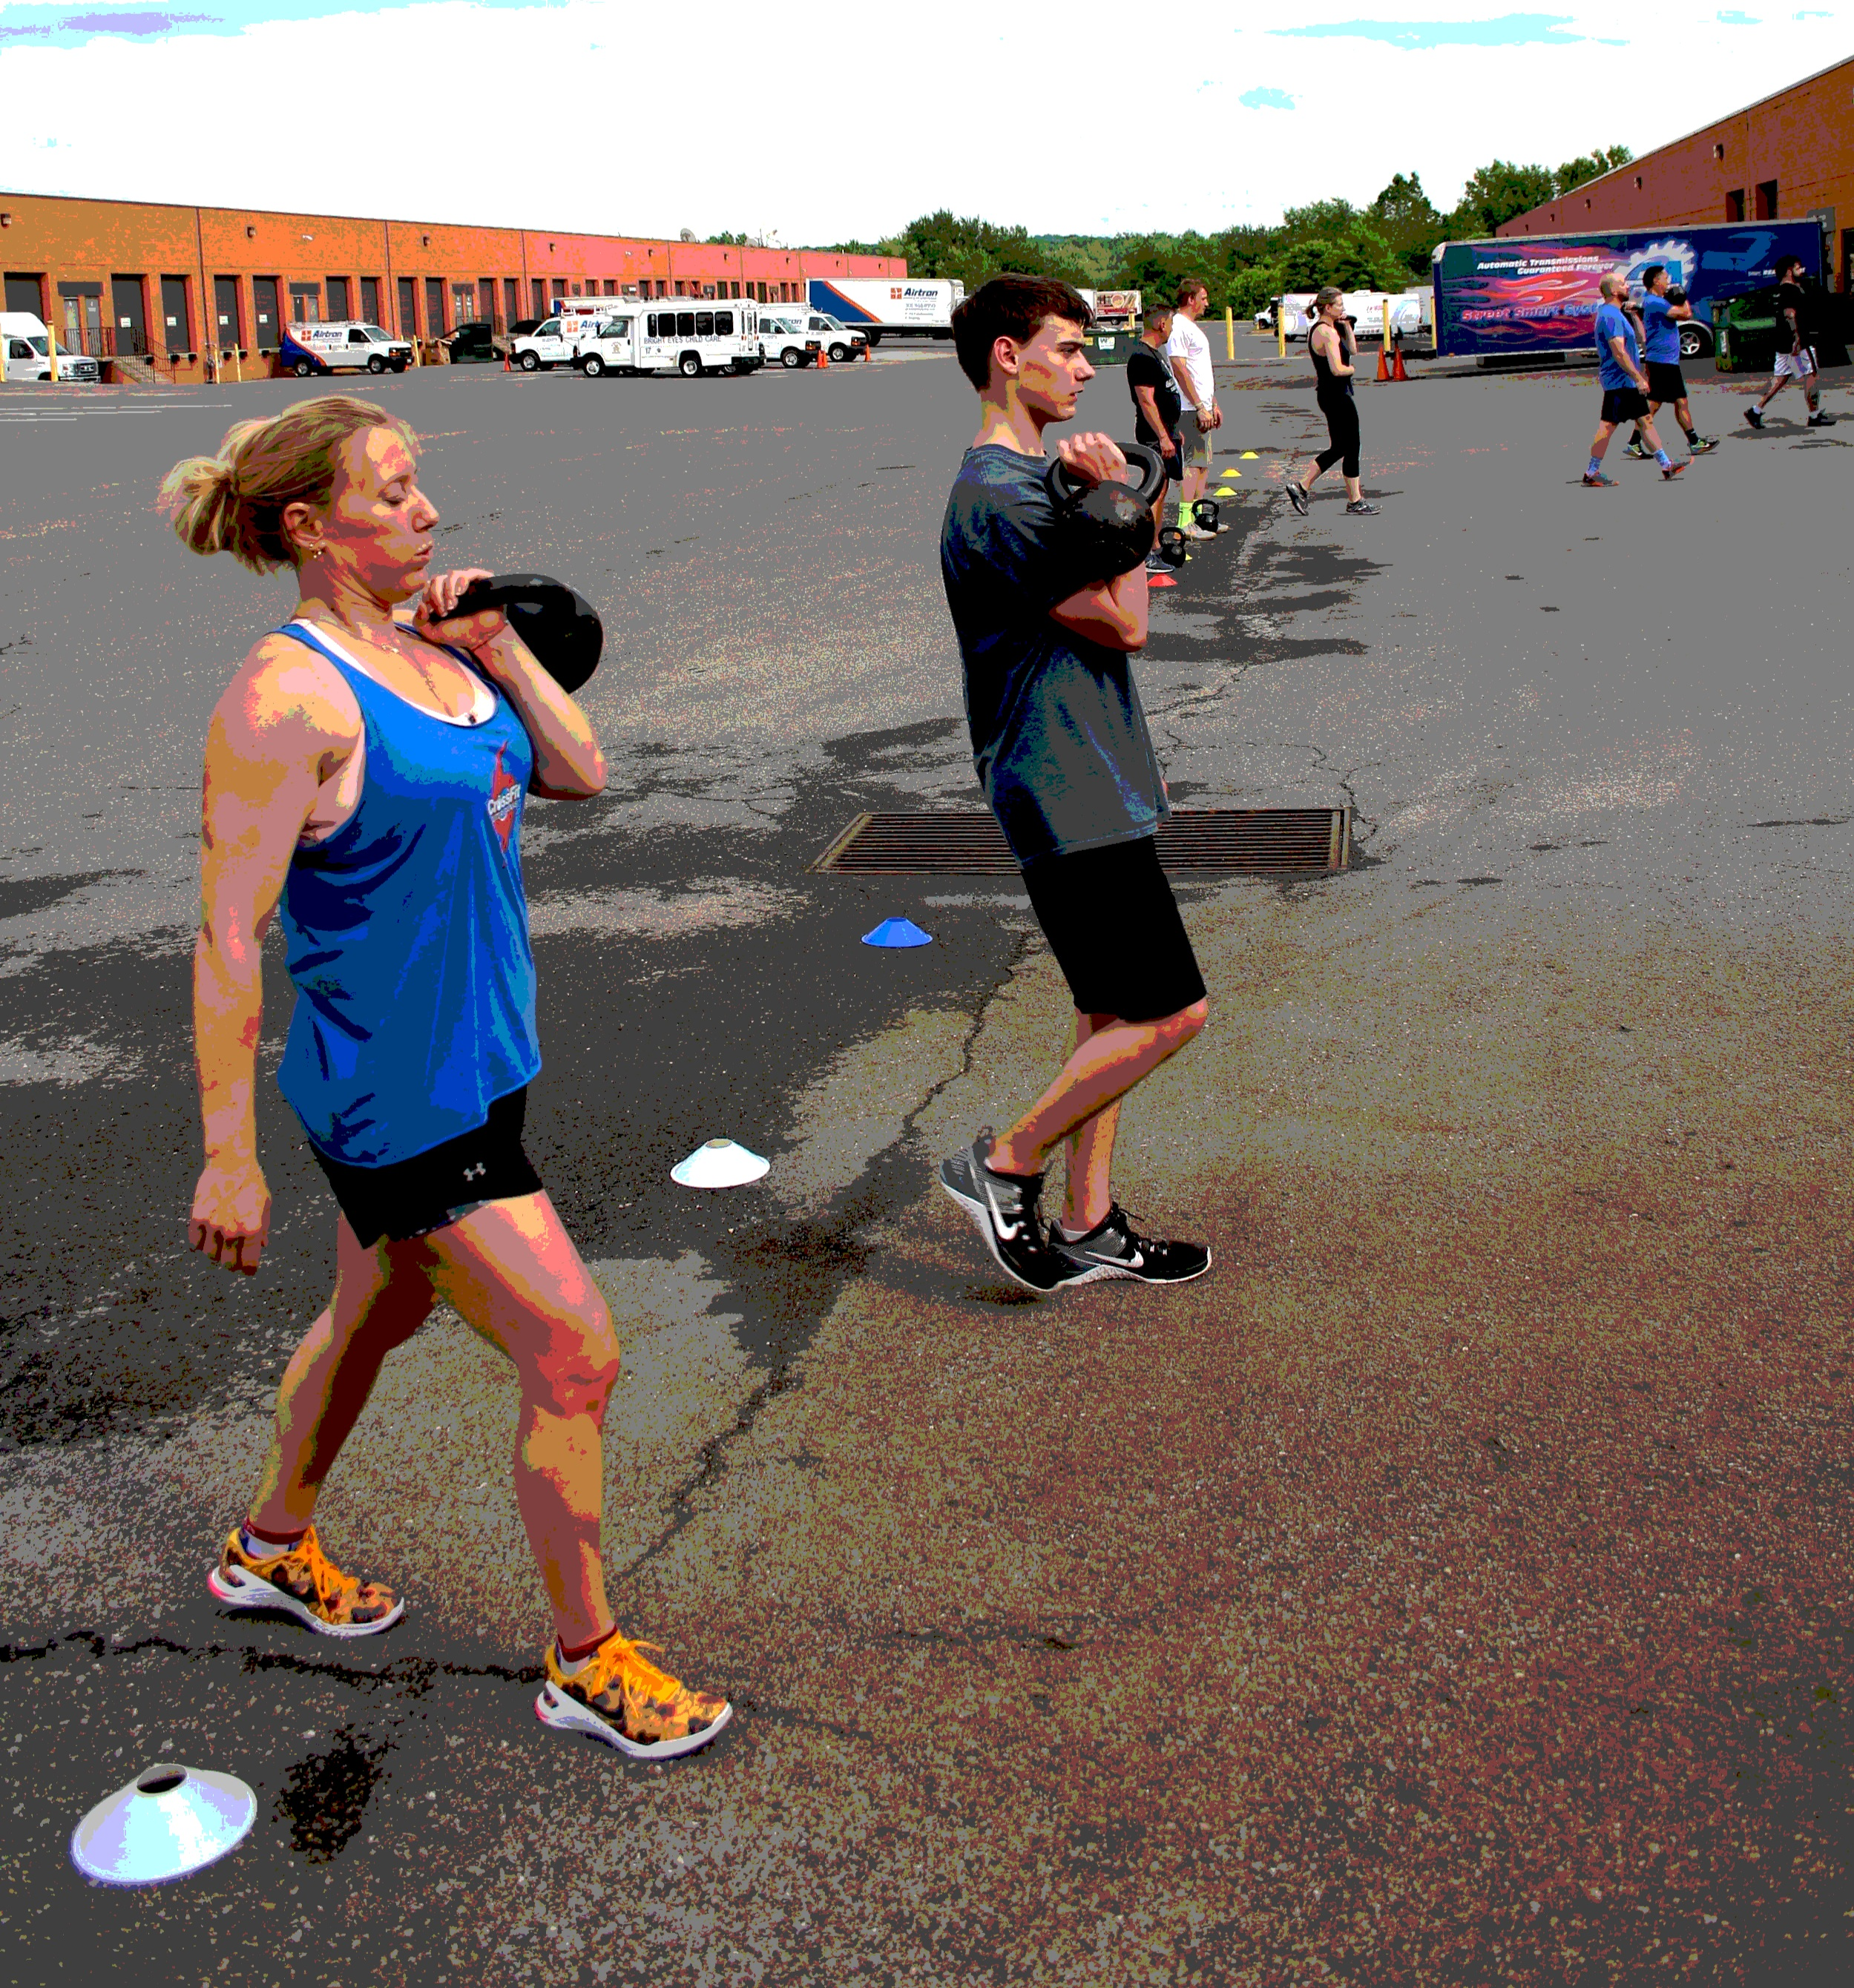 Pam Bator and her son, Mason. Kettlebell front rack carry for 10-meters.